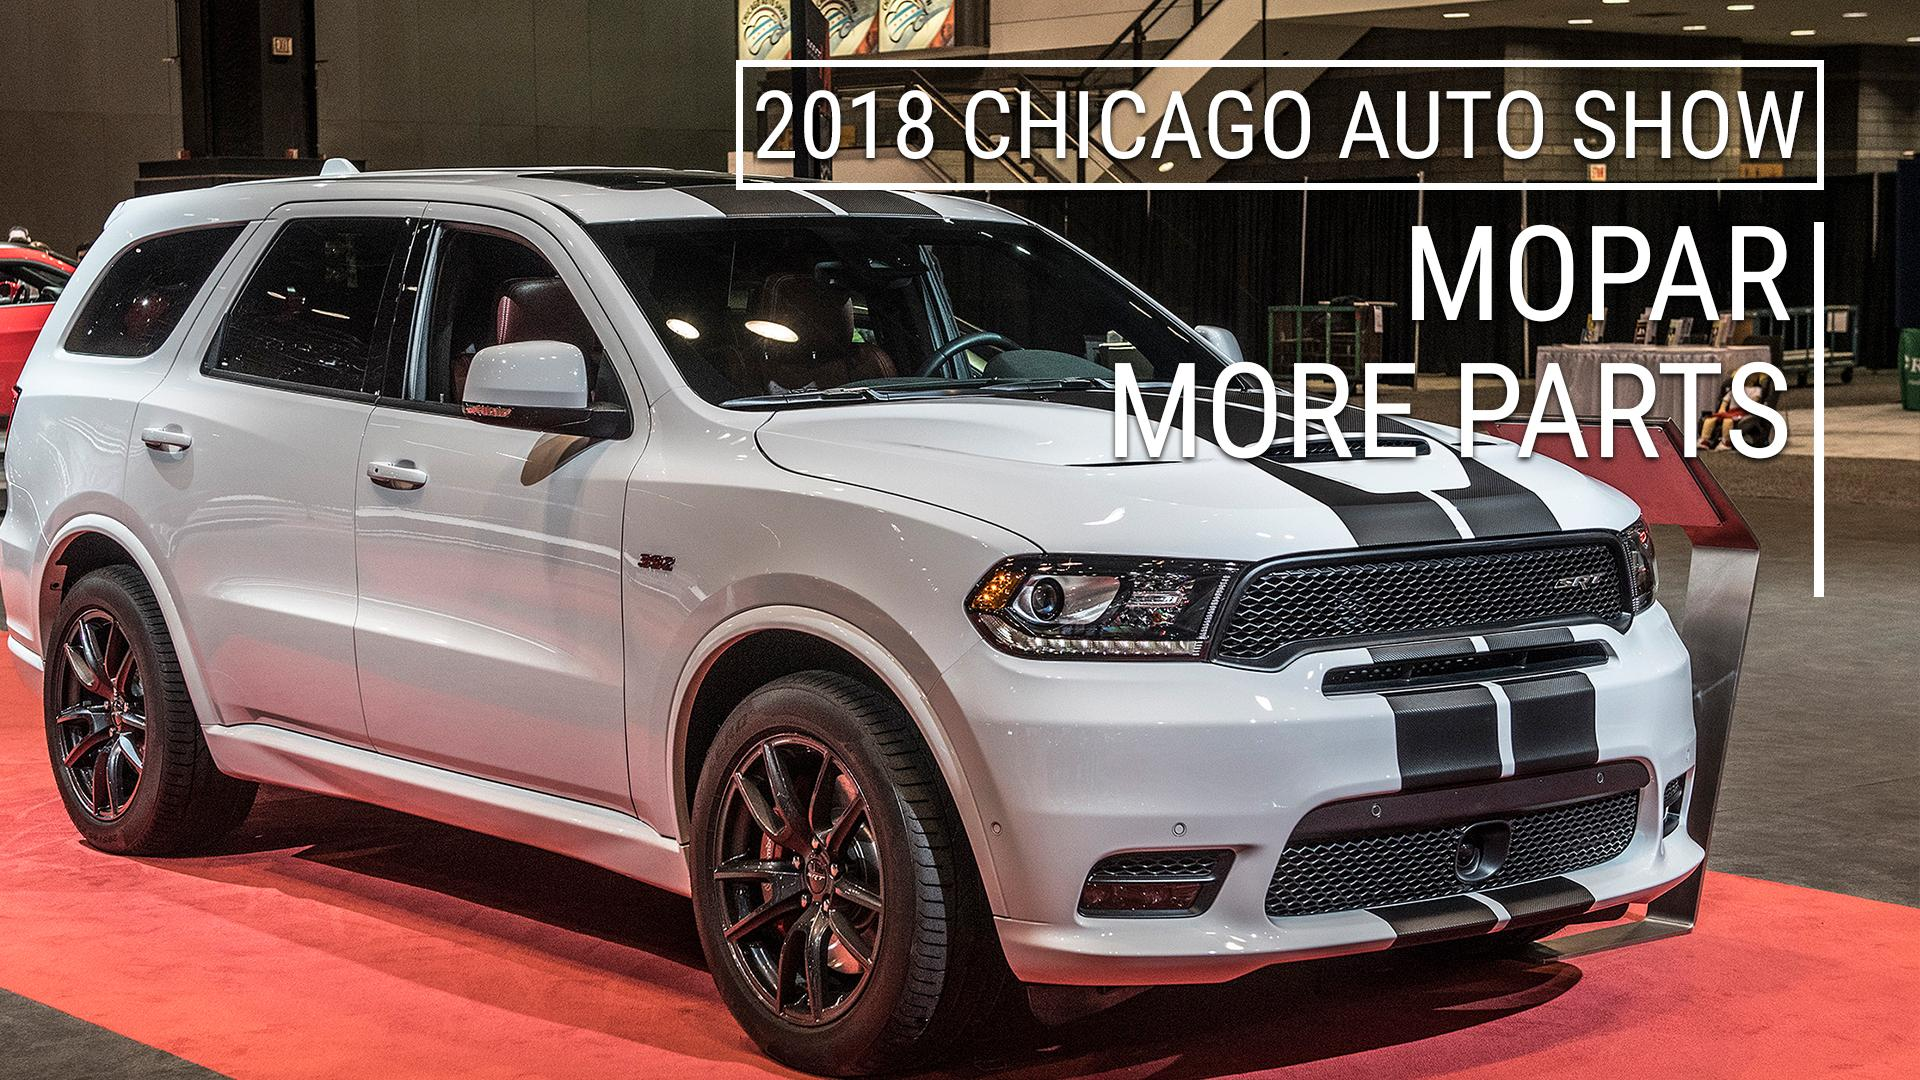 The Dodge Durango Gt Gets Front End Treatment From Sporty